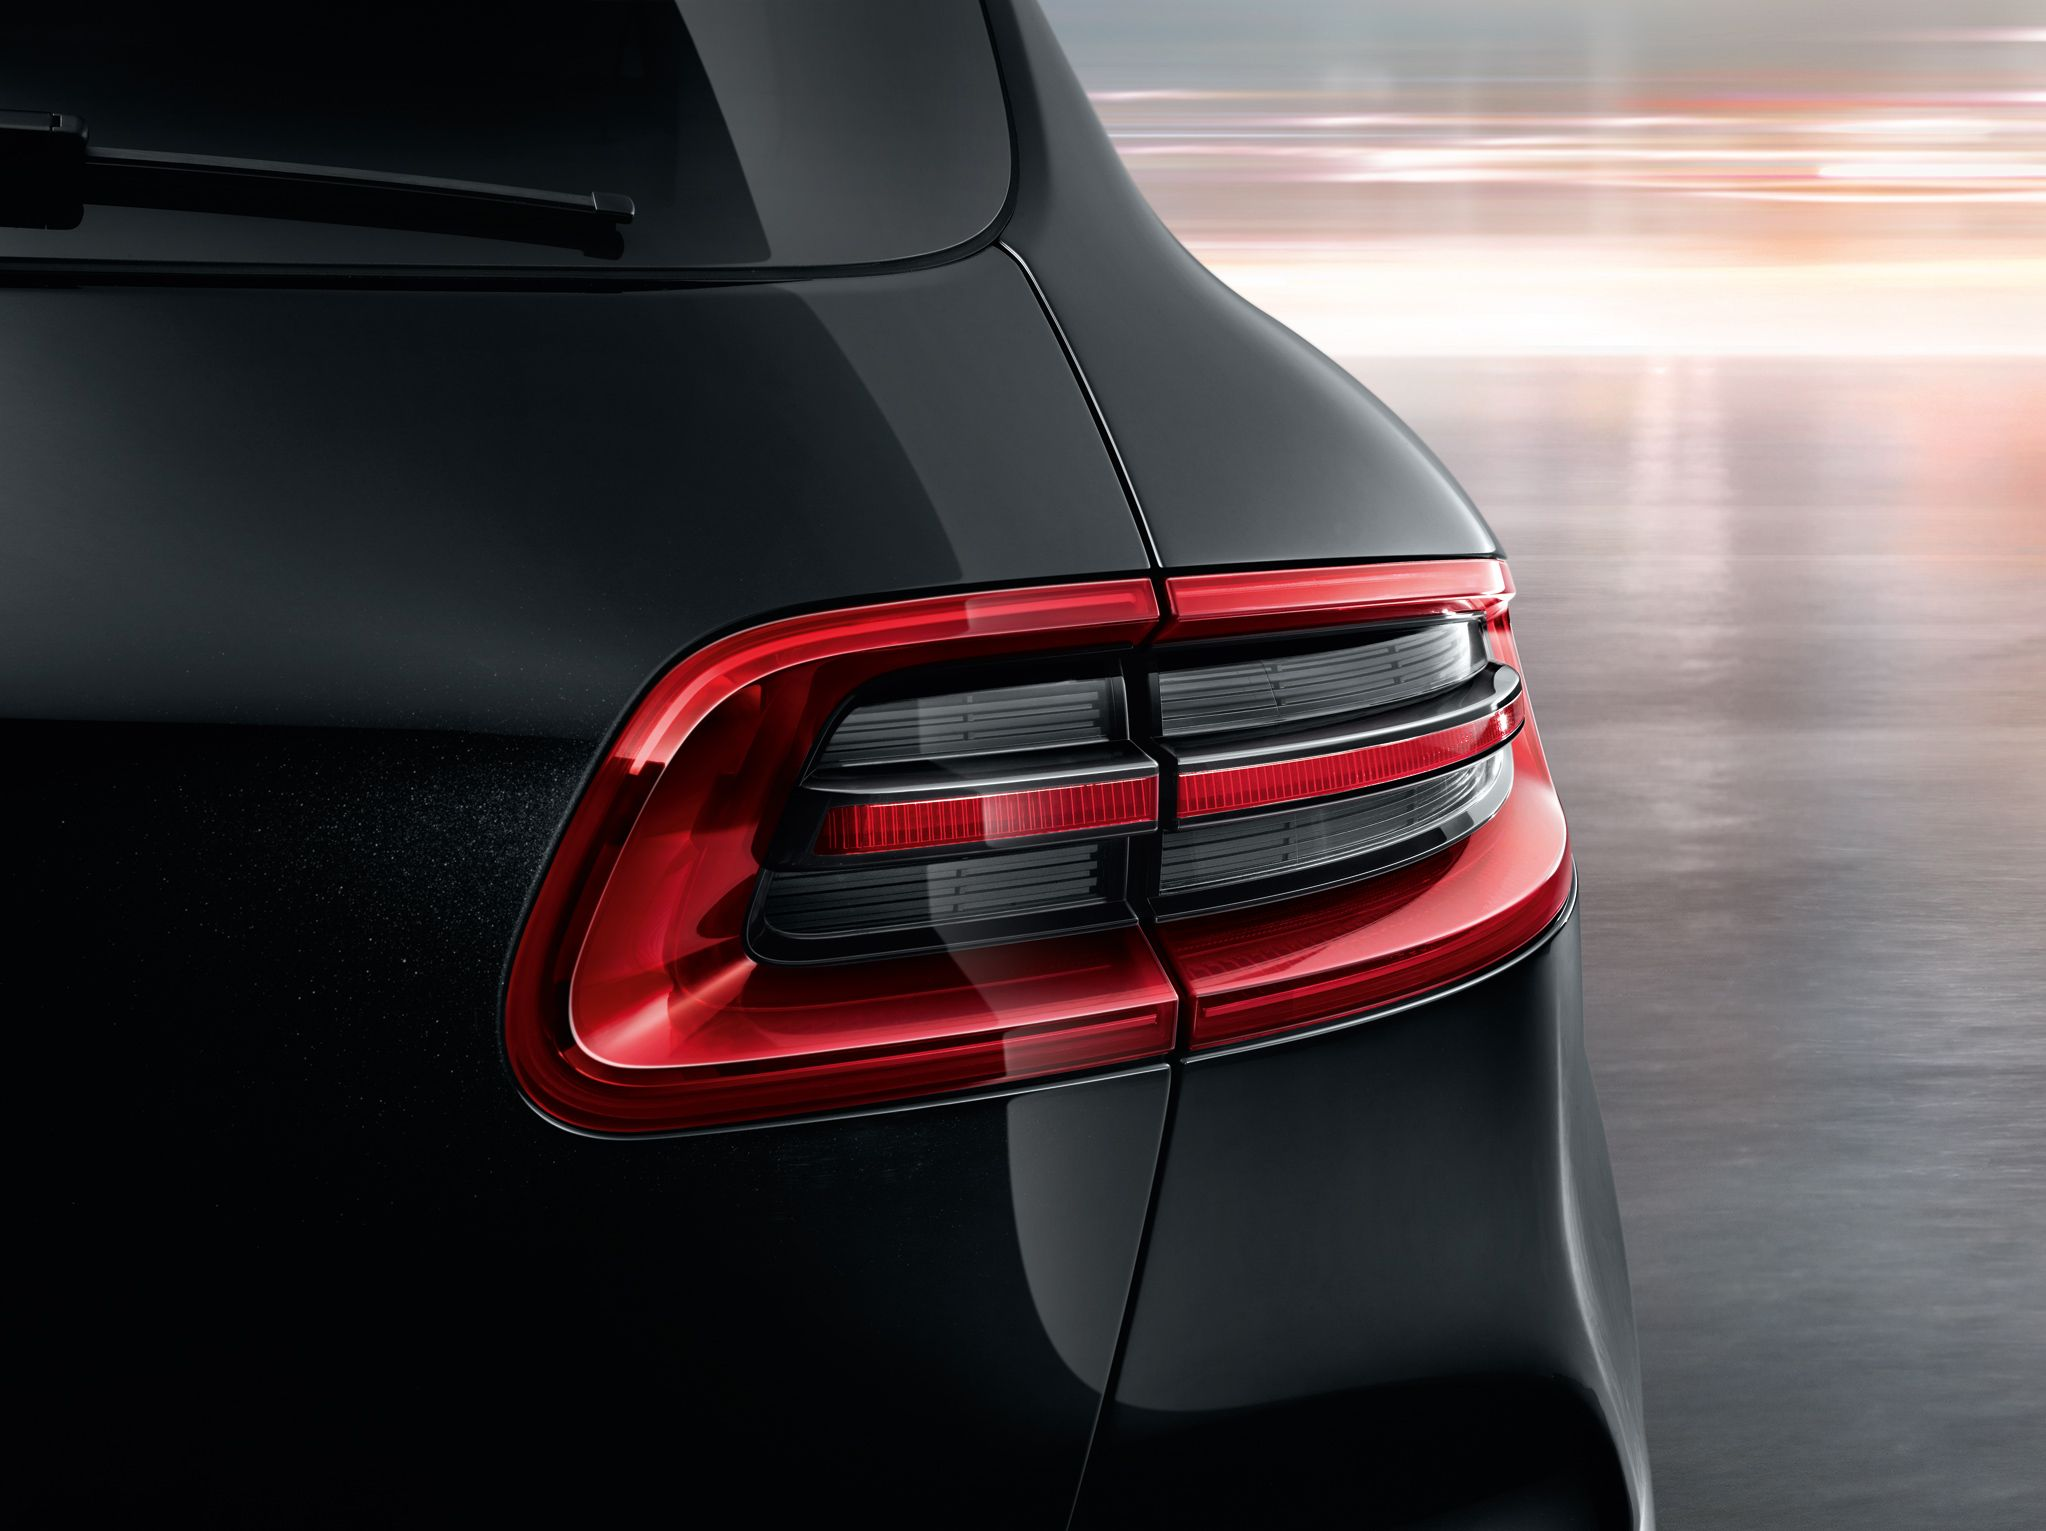 PorscheMacan The narrow LED tail lights have a three